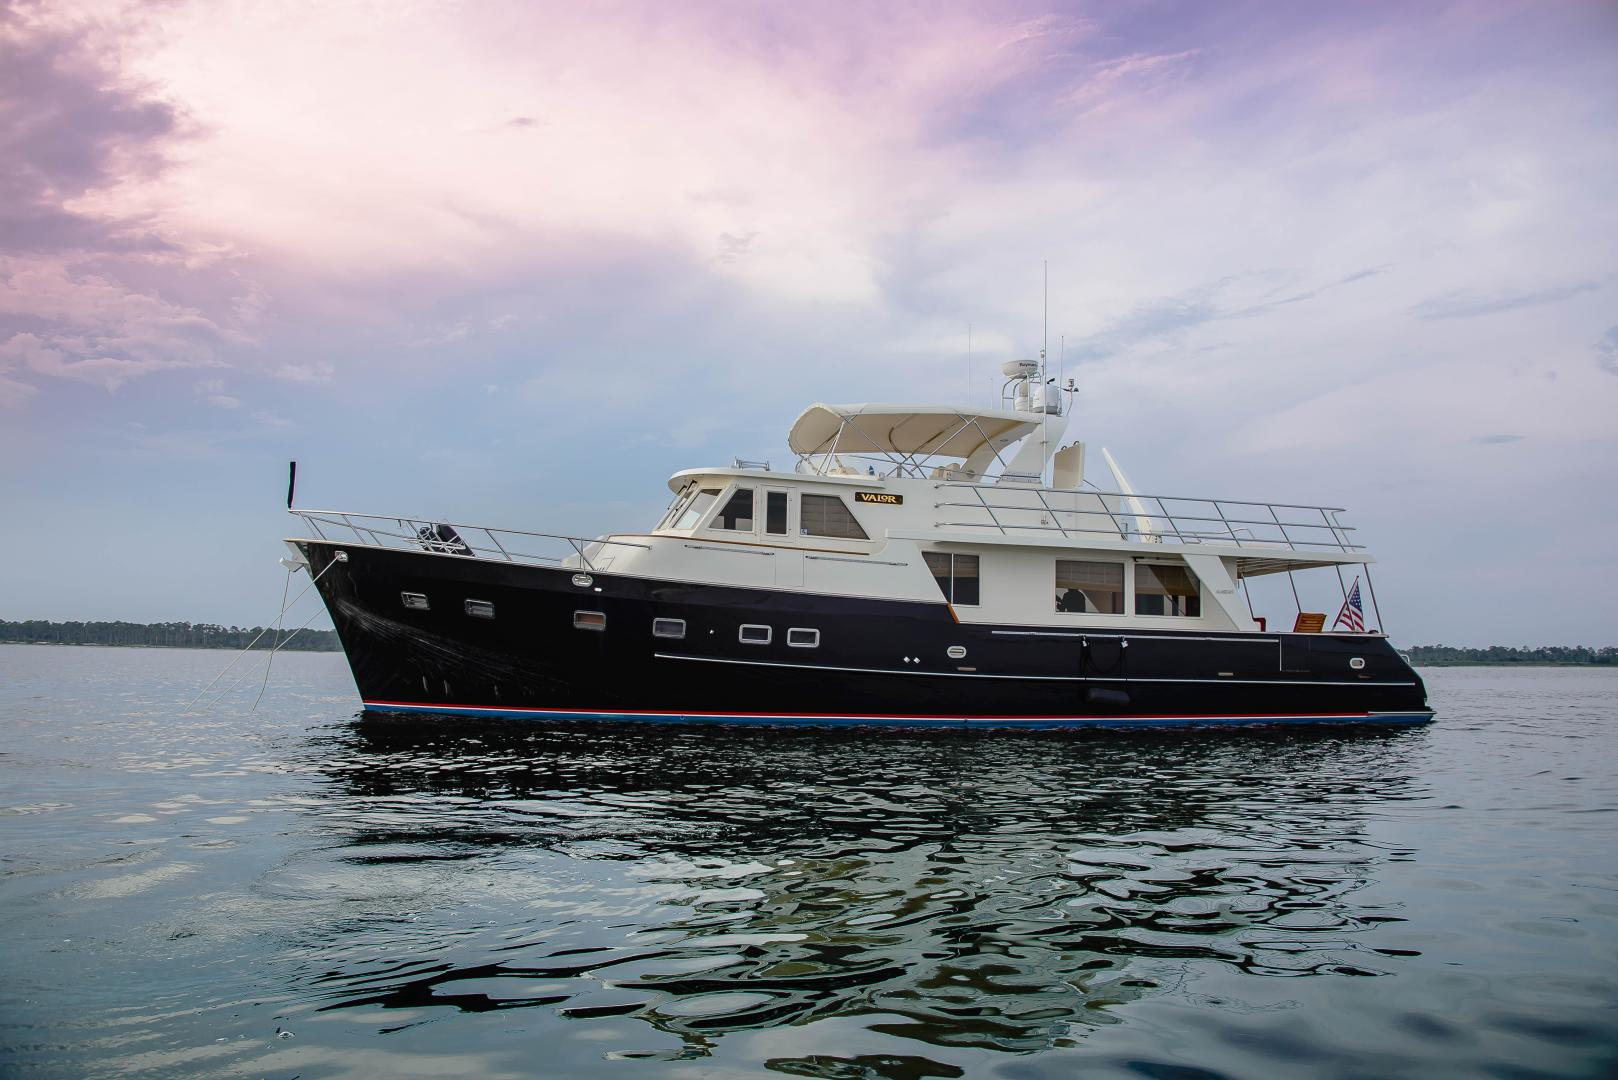 64' Grand Alaskan Pilothouse